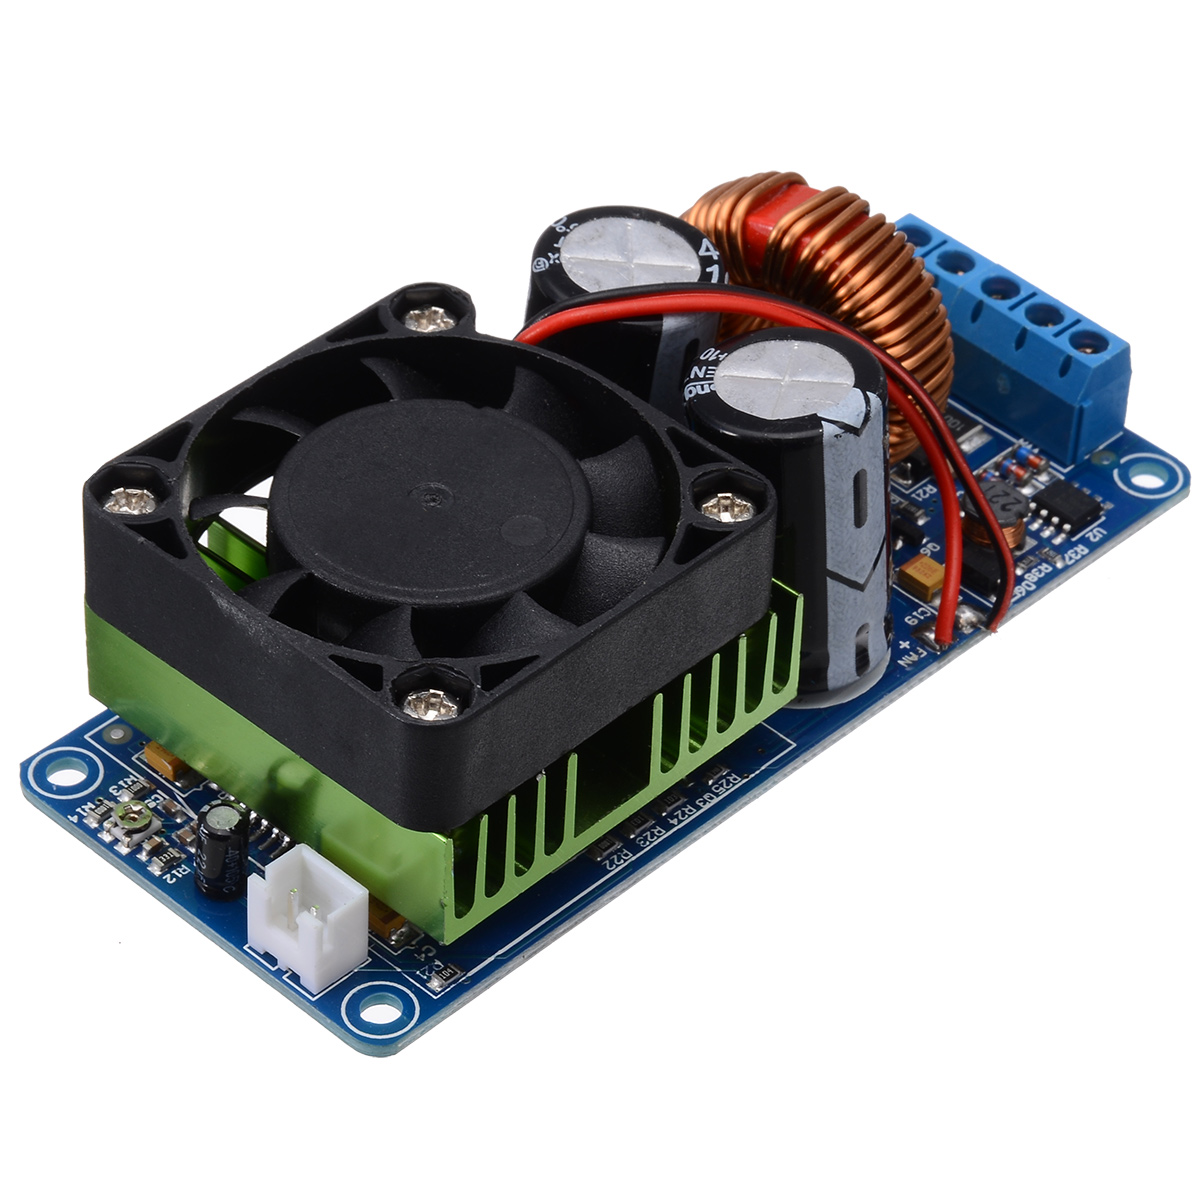 New IRS2092S Mono Channel Digital Amplifier Module 20Hz 20KHz Class D HIFI Power Amp Board With Fan 500W-in Amplifier from Consumer Electronics